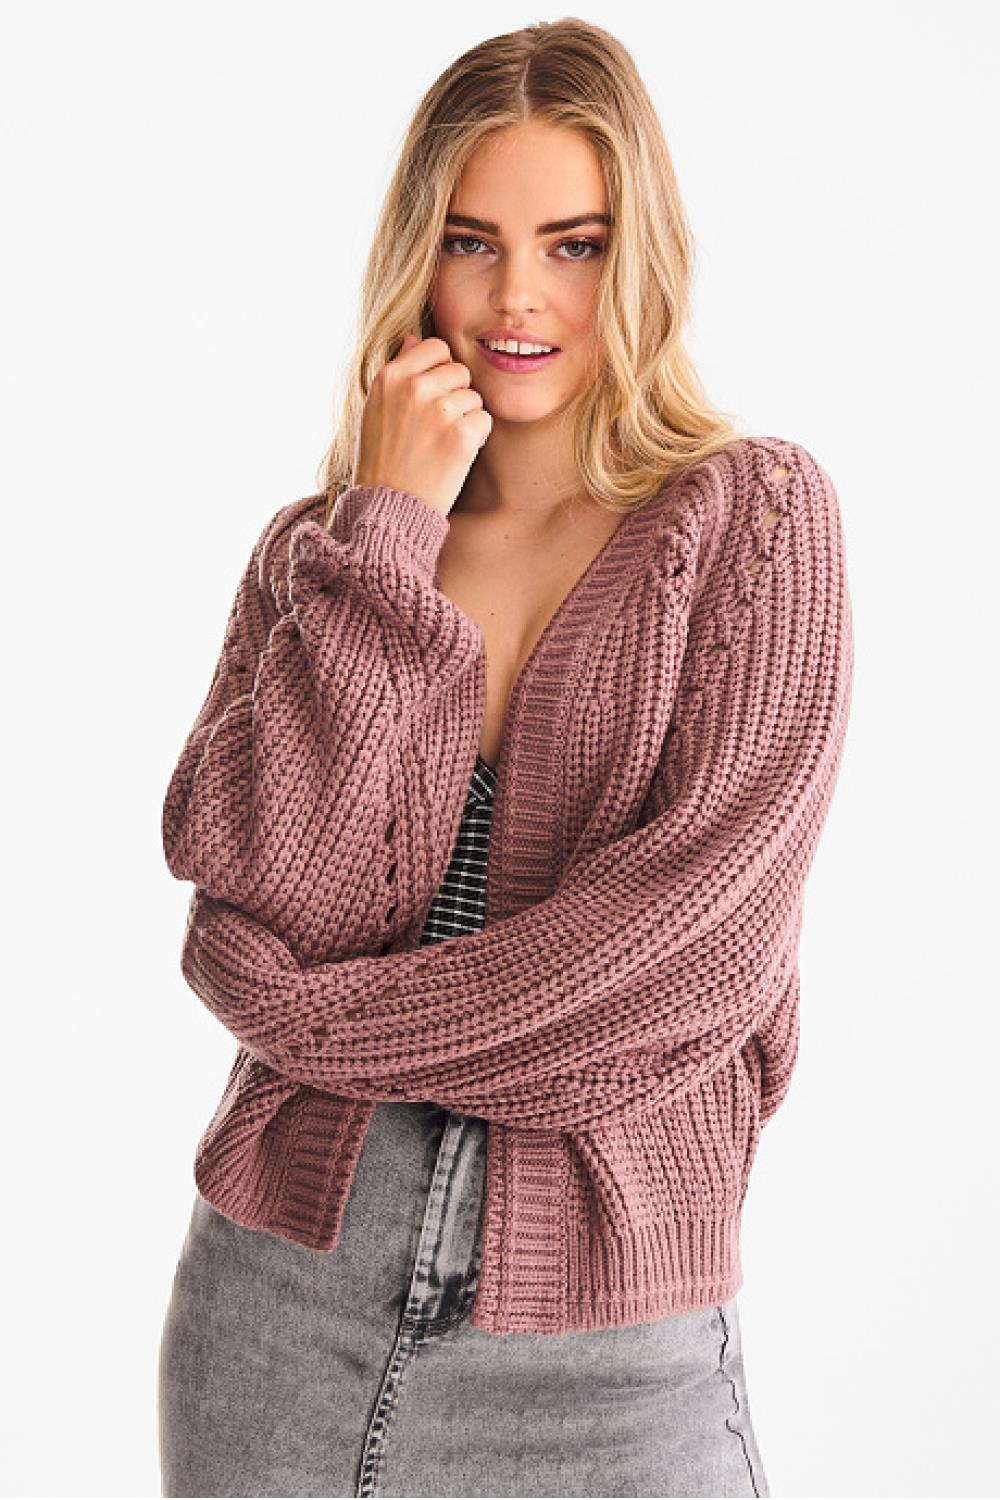 moda low cost cardigan c&a 19,90€